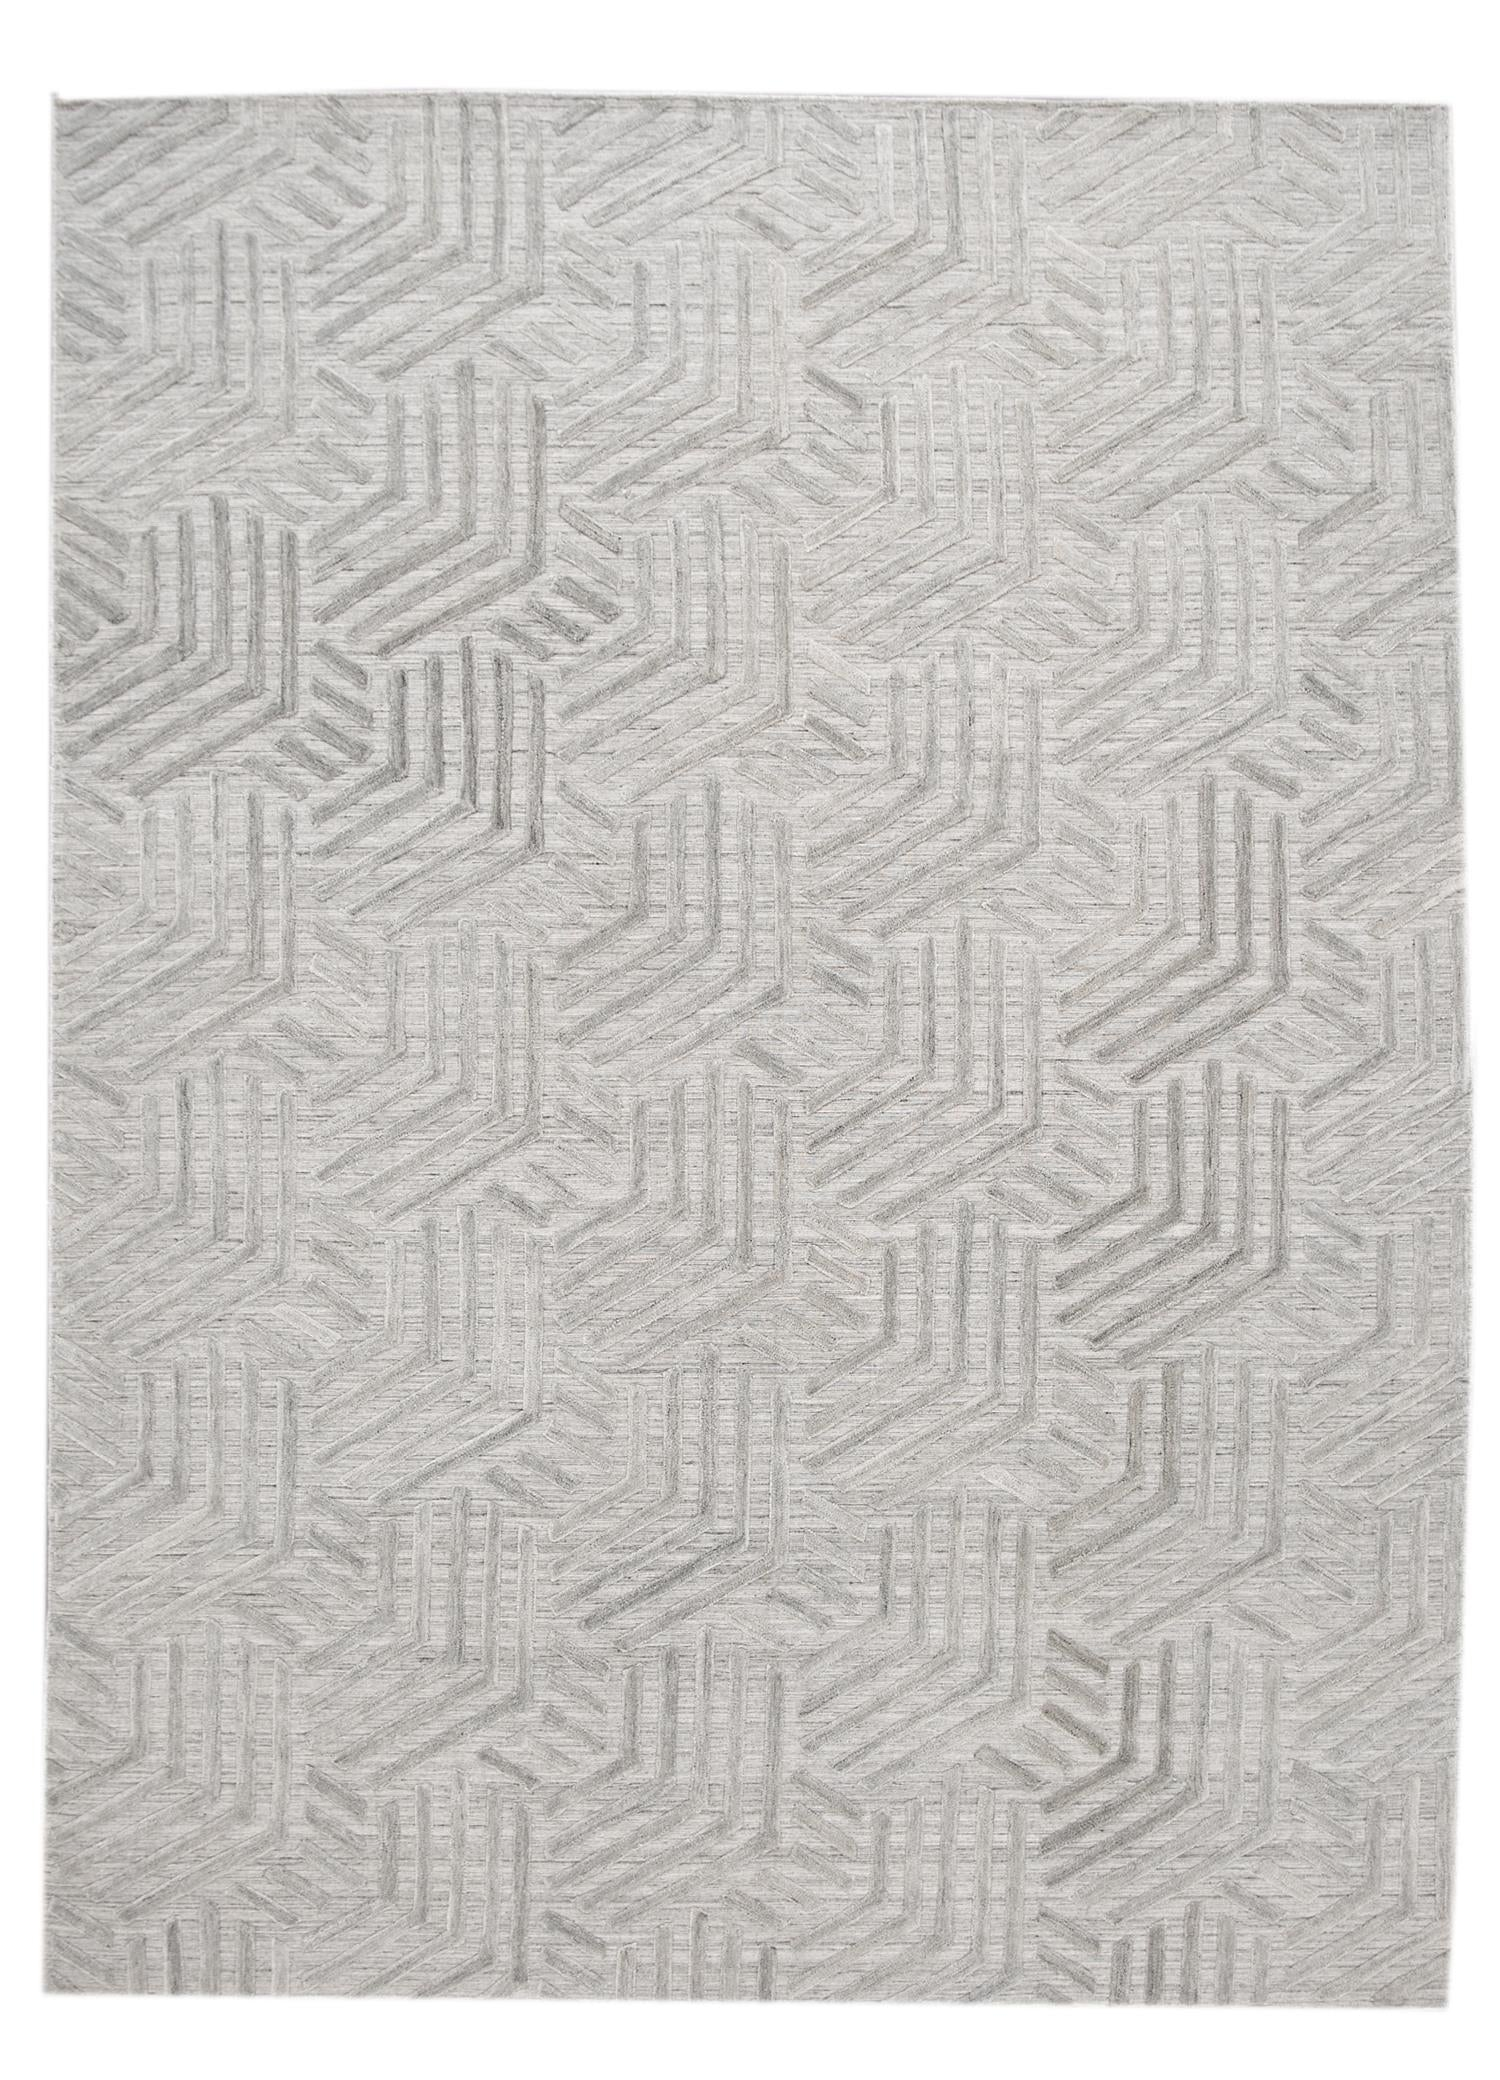 Modern Flatweave Transitional Rug, 9x12